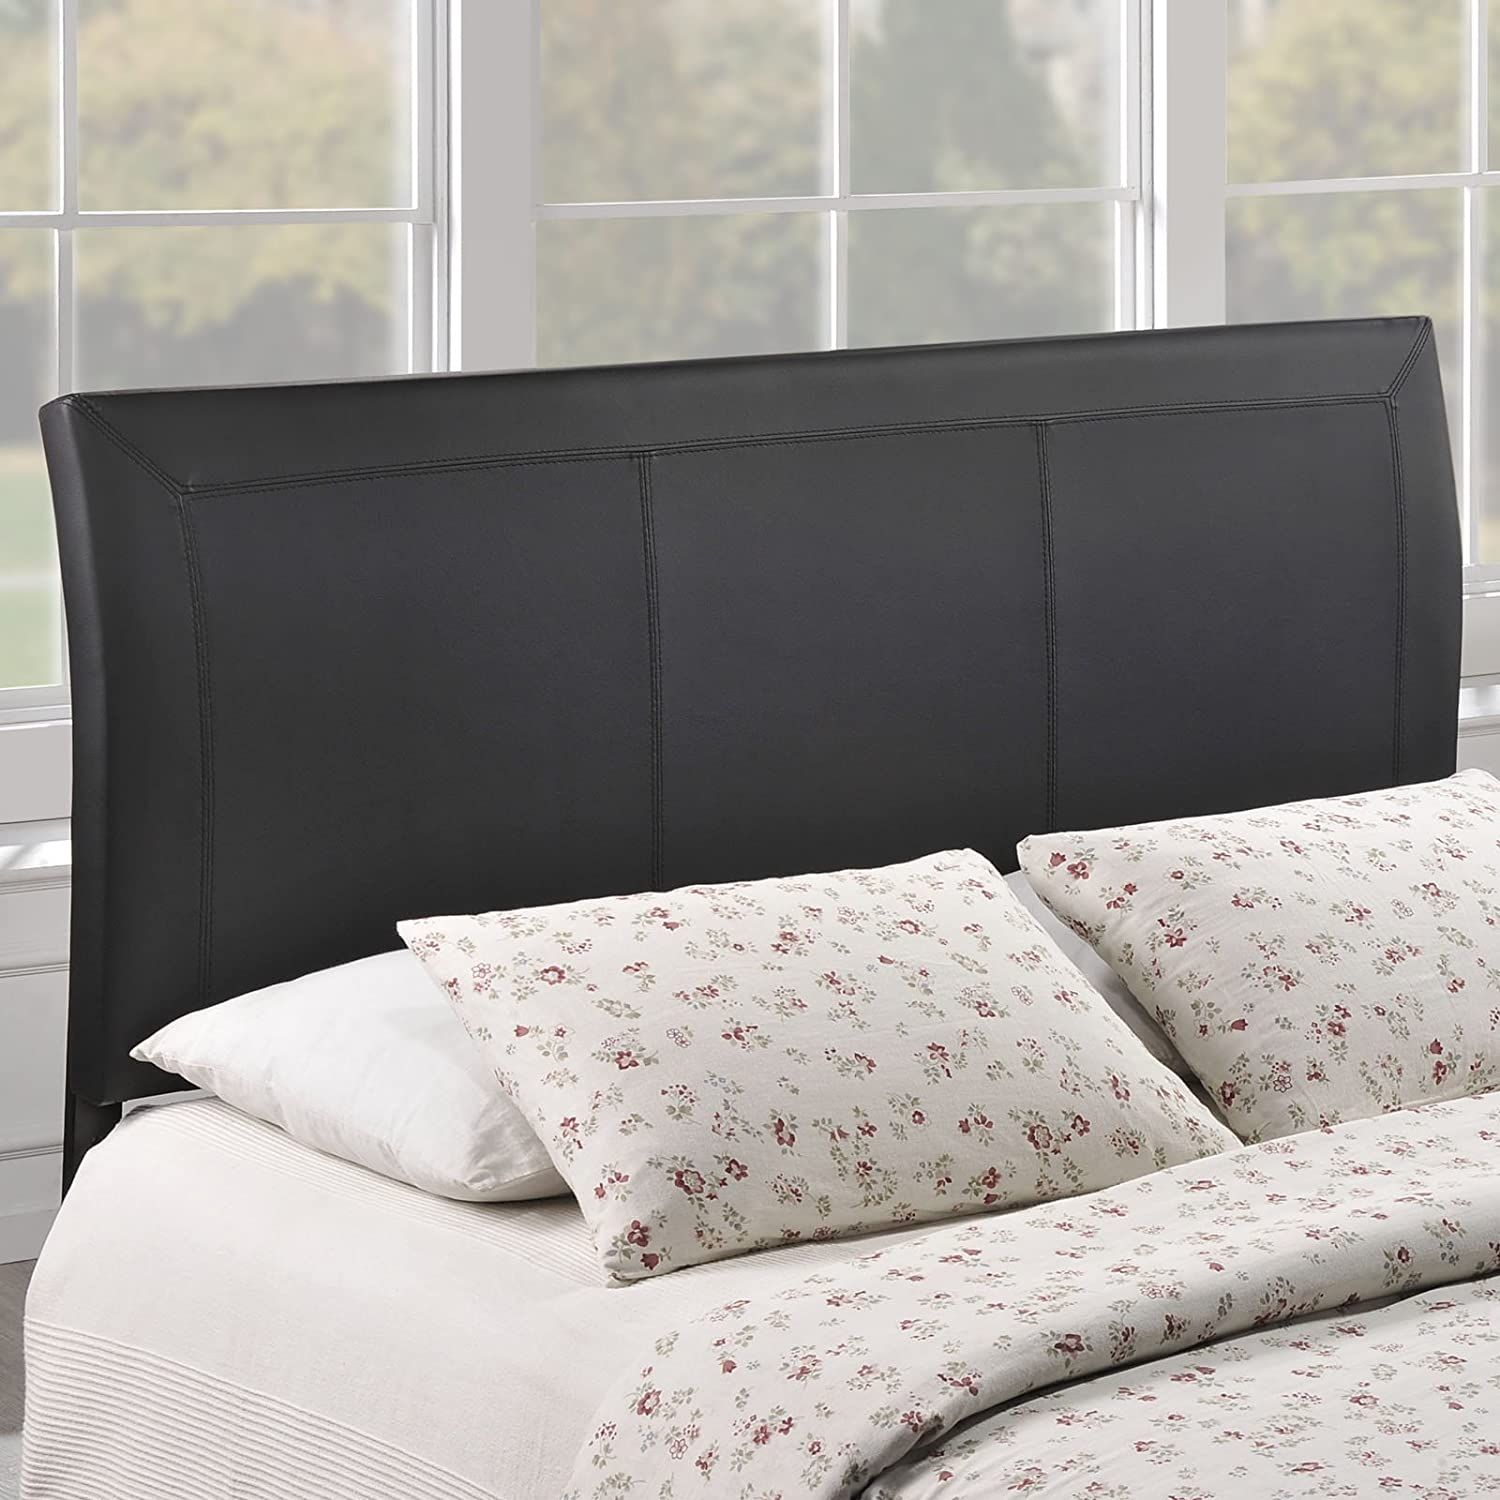 bedroom size upholstered large king head beds frame luxury for queen of canada furniture headboard tall headboards bed elegant